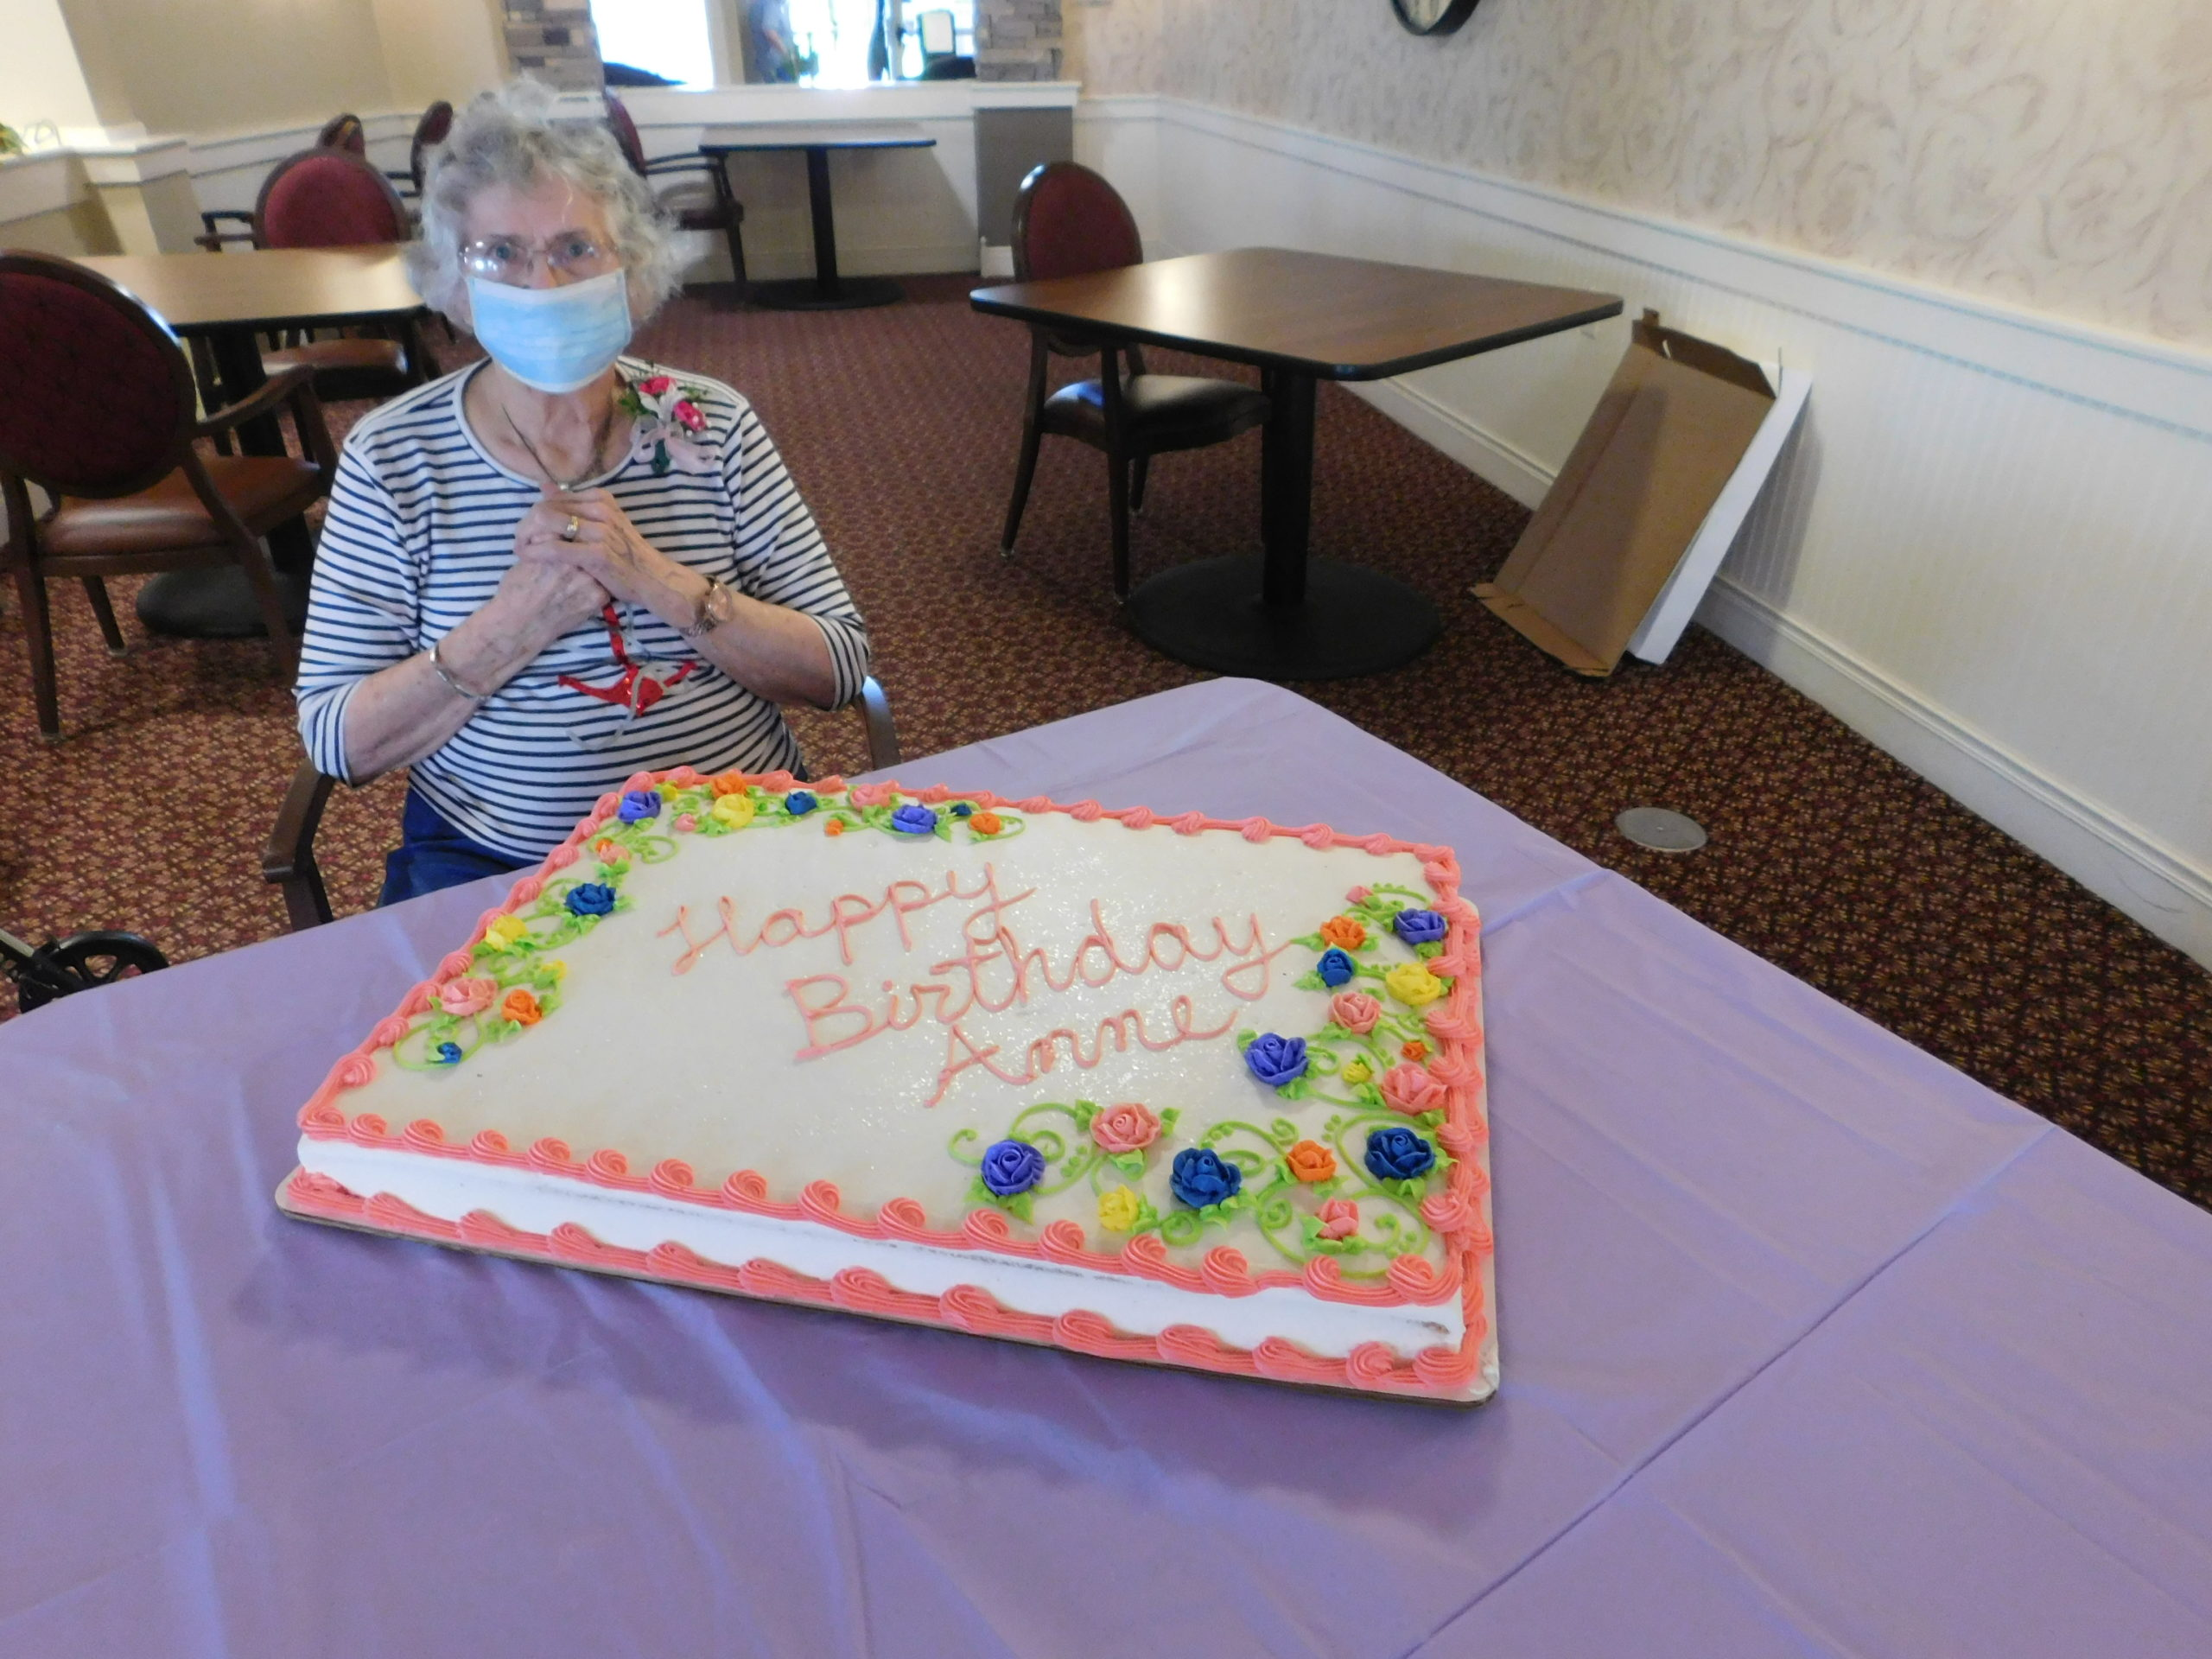 Anne's family shared a cake for the Primrose Residents so Anne enjoyed greeting everyone when they came to get a piece of her birthday cake in a